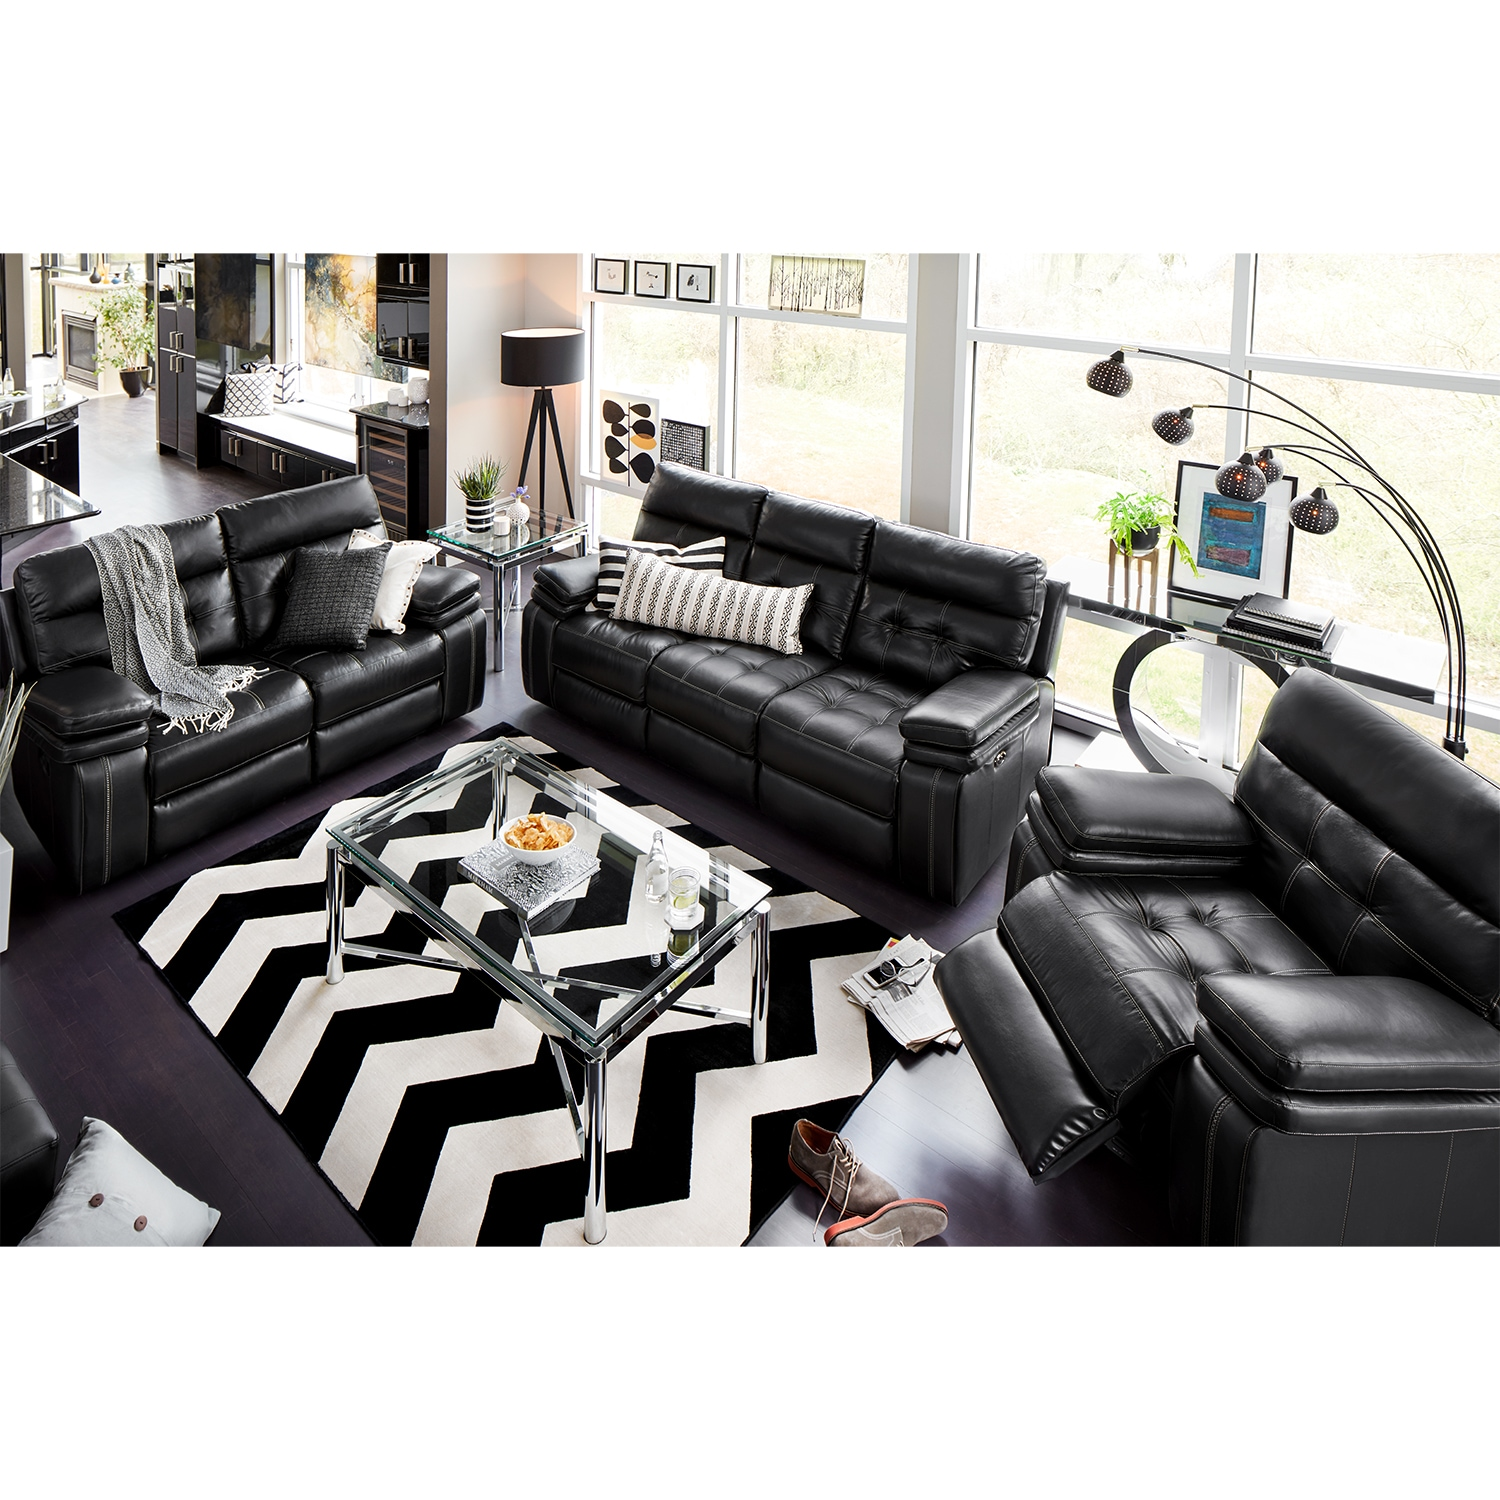 Brisco Power Reclining Sofa, Reclining Loveseat and Glider Recliner Set - Black